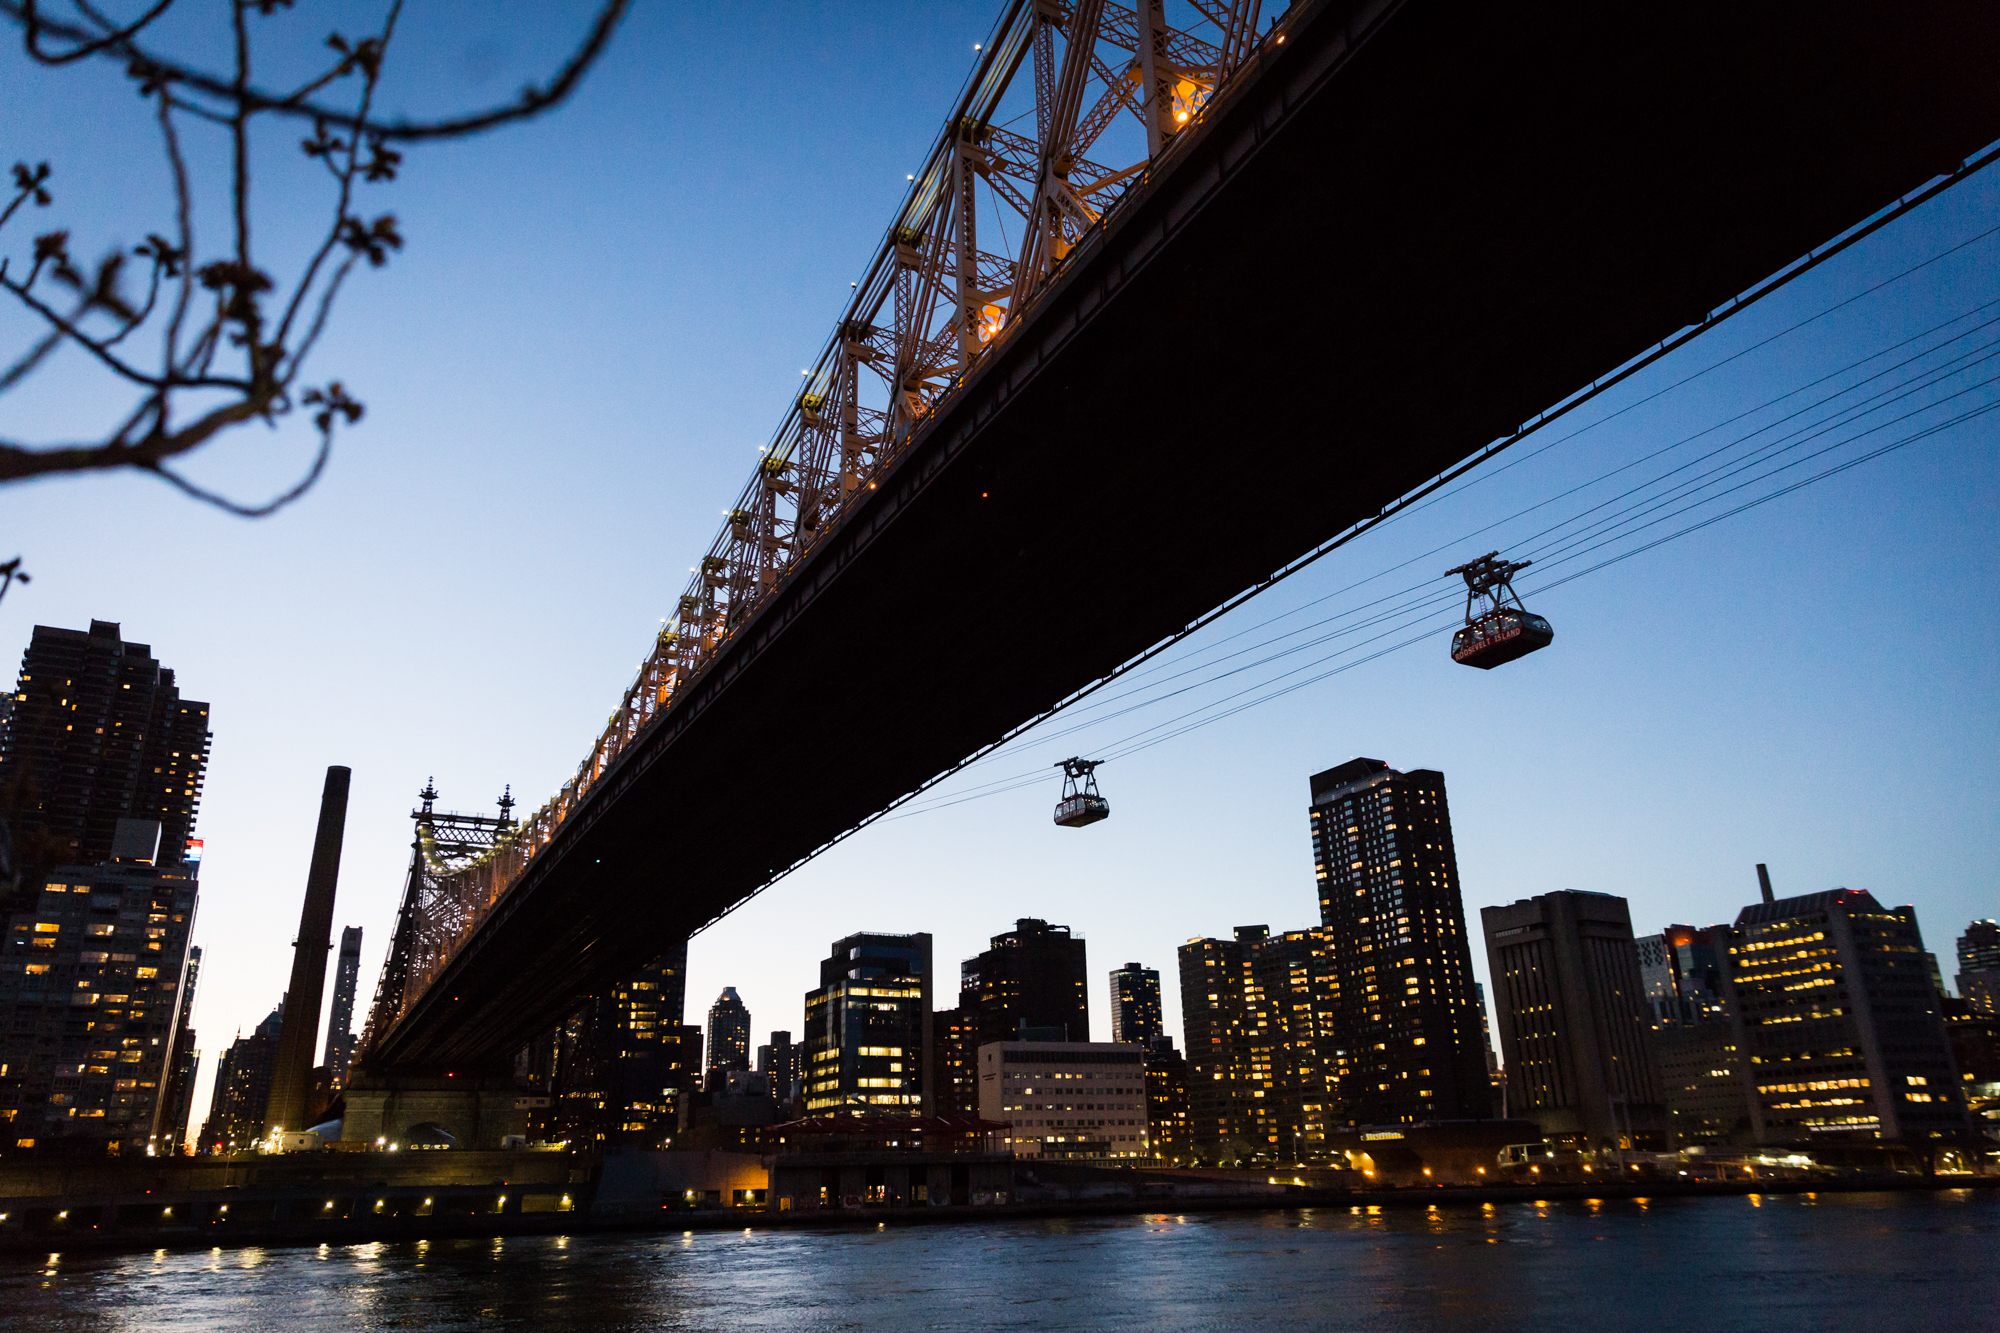 Roosevelt Island at dusk for an article on cherry blossom photo tips